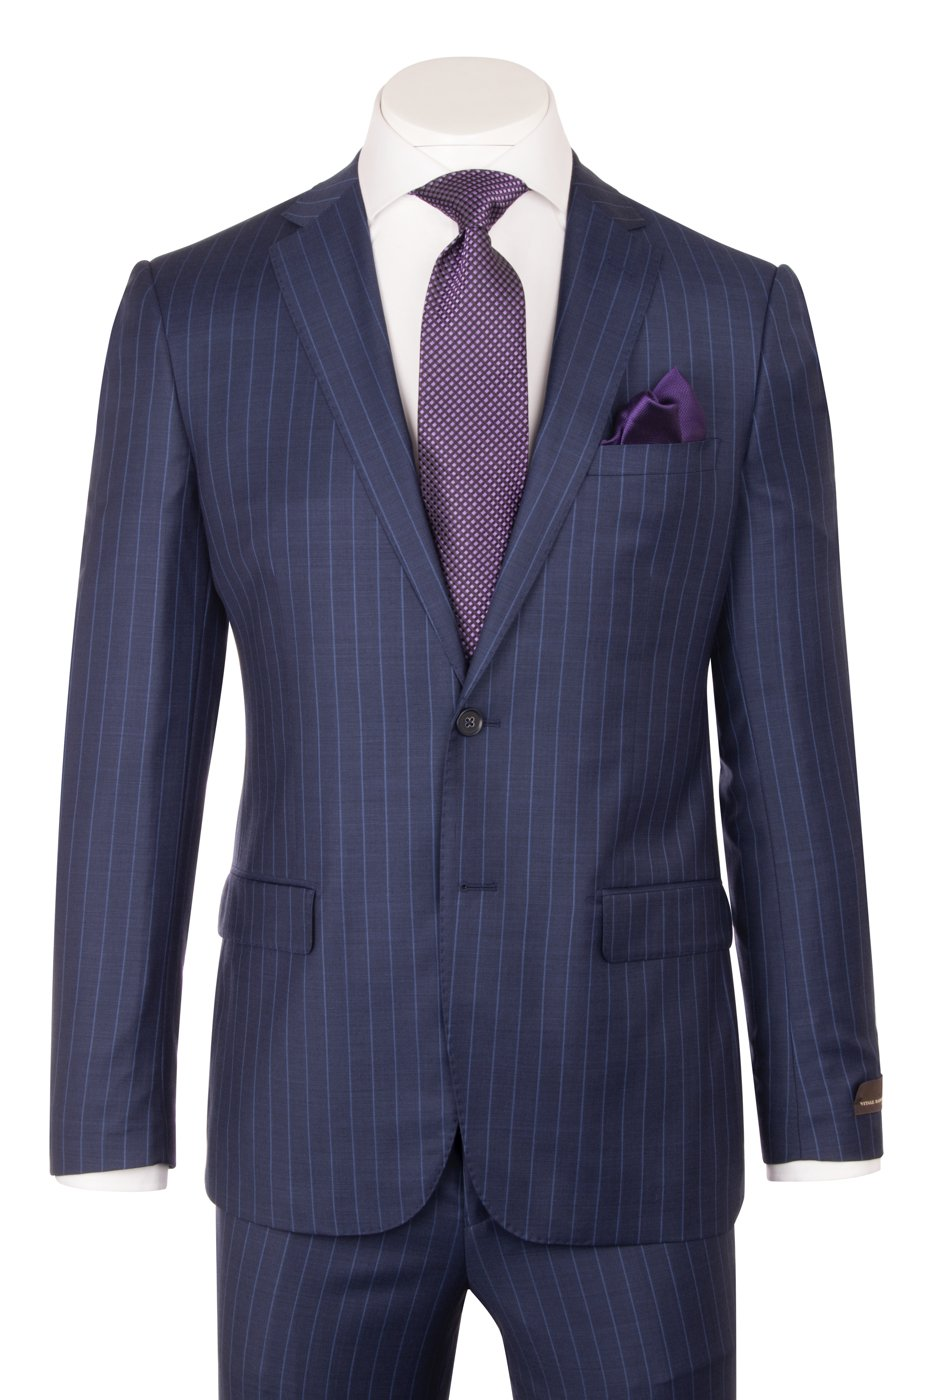 Porto Slim Fit, New Blue with F.Blue Pinstripe, Pure Wool Suit by VITALE BARBERIS CANONICO Cloth by Canaletto Menswear CV9210